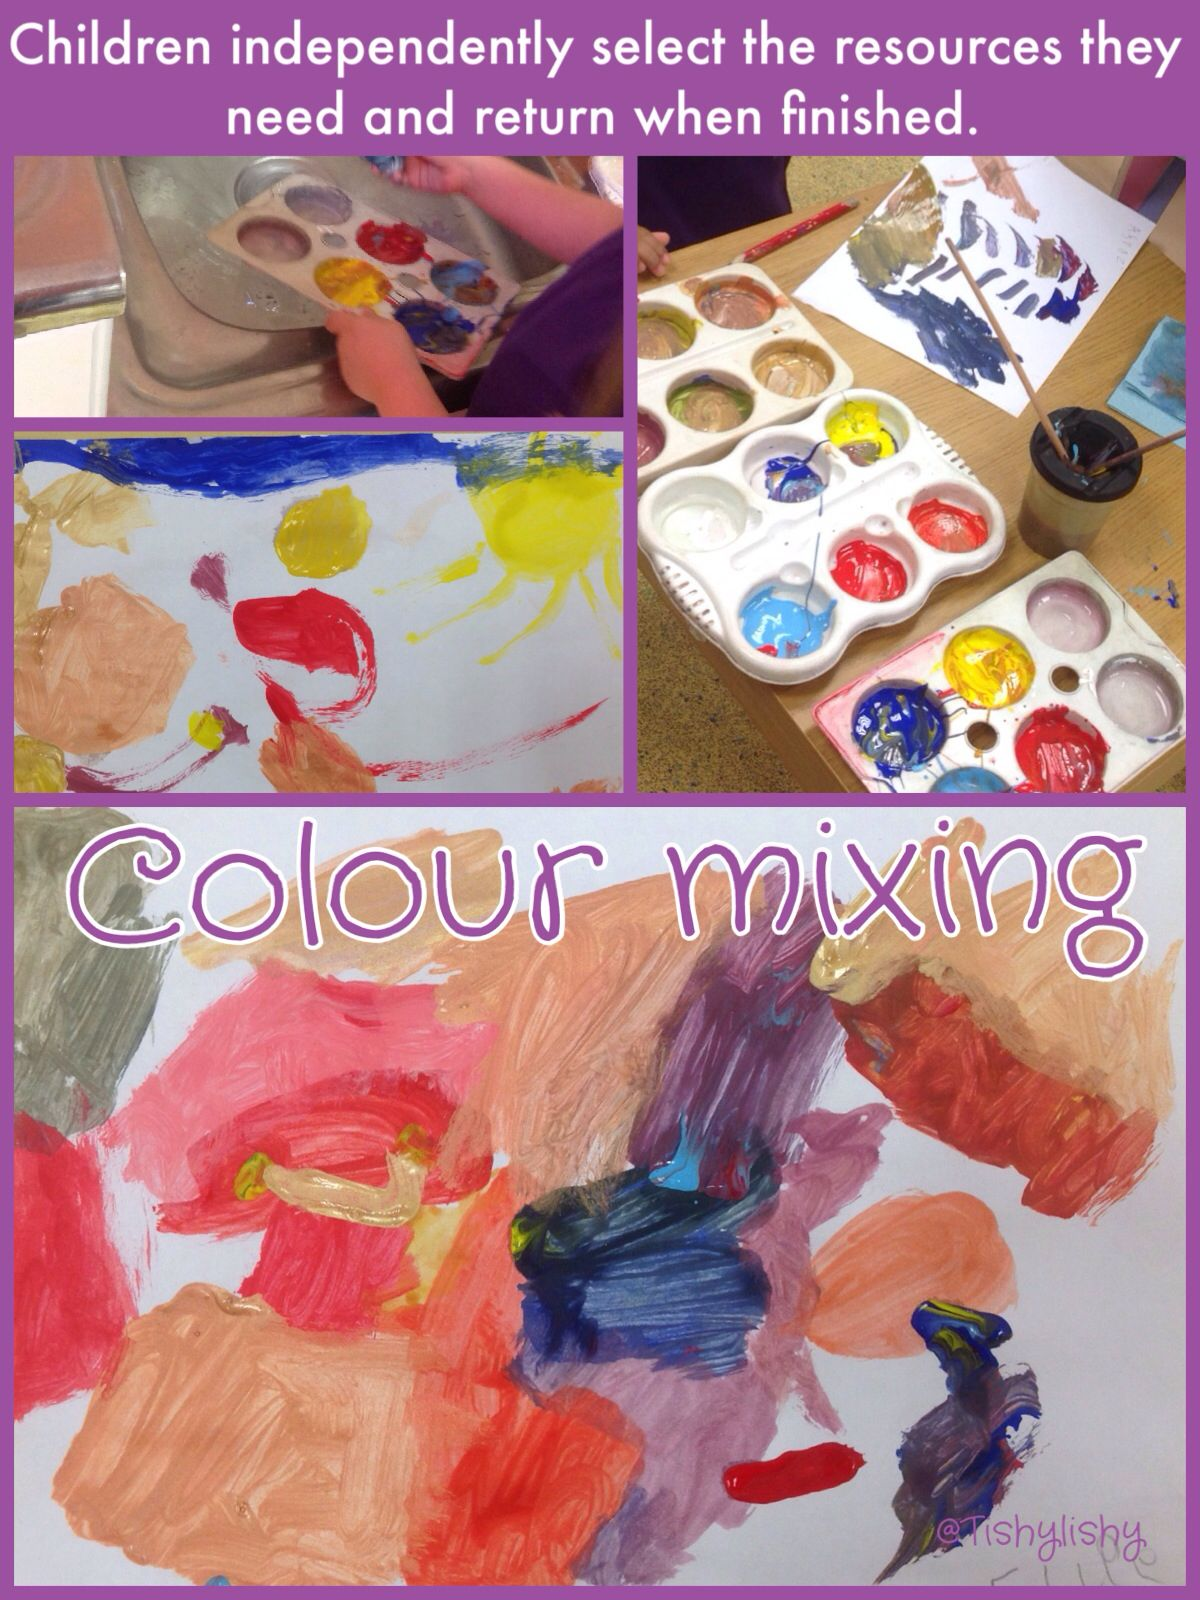 Independent Colour Mixing Children Get All The Resources They Need